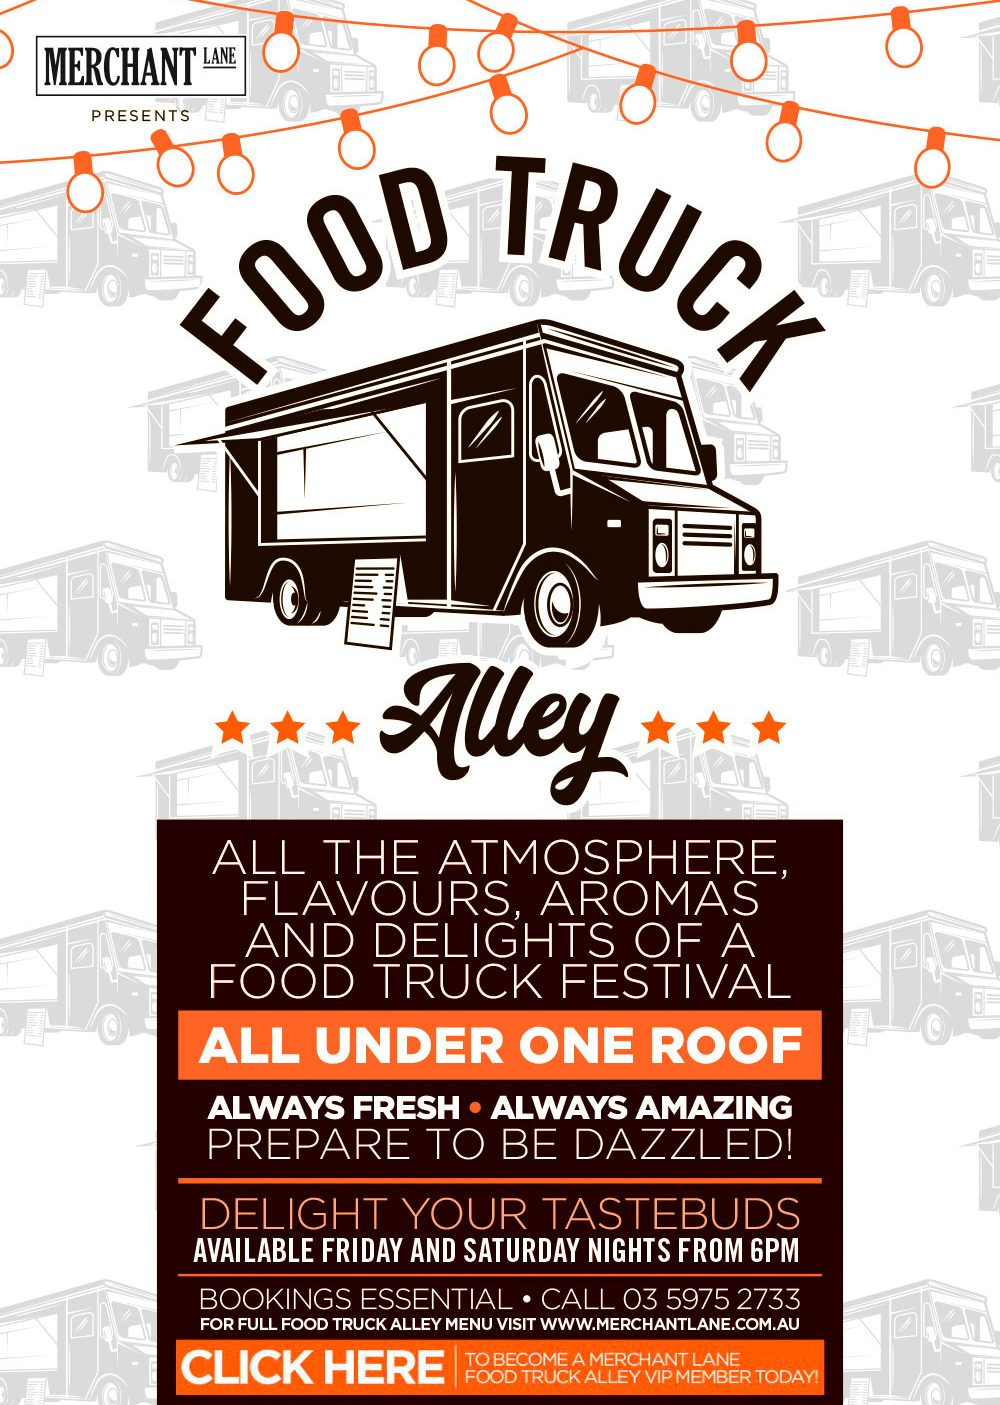 Merchant Lane Food Truck Alley